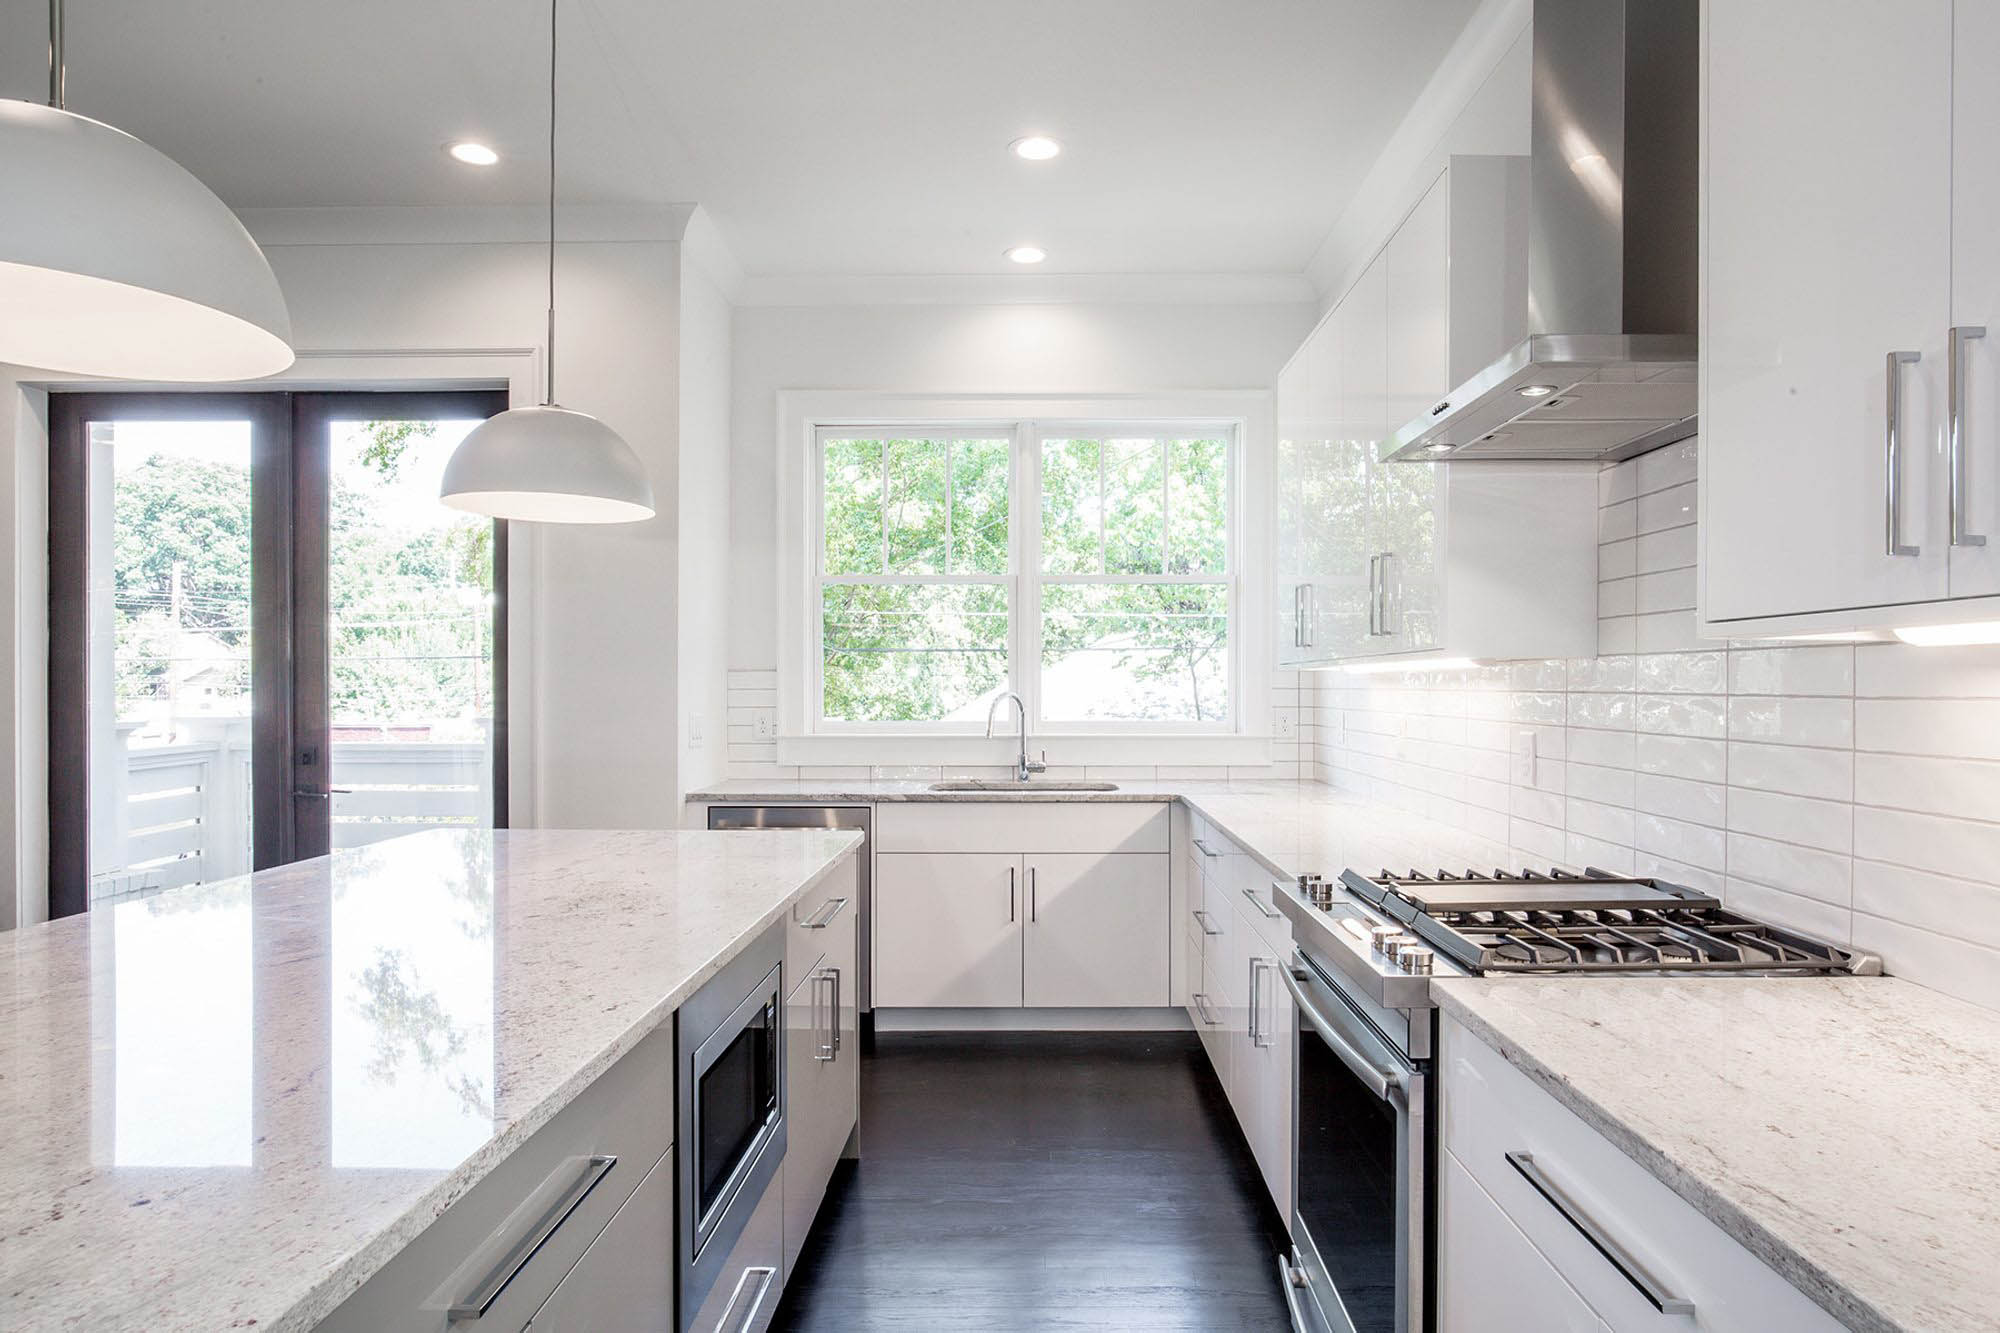 White quartz with spotted gray and brown highlights throughout. A very white kitchen design.